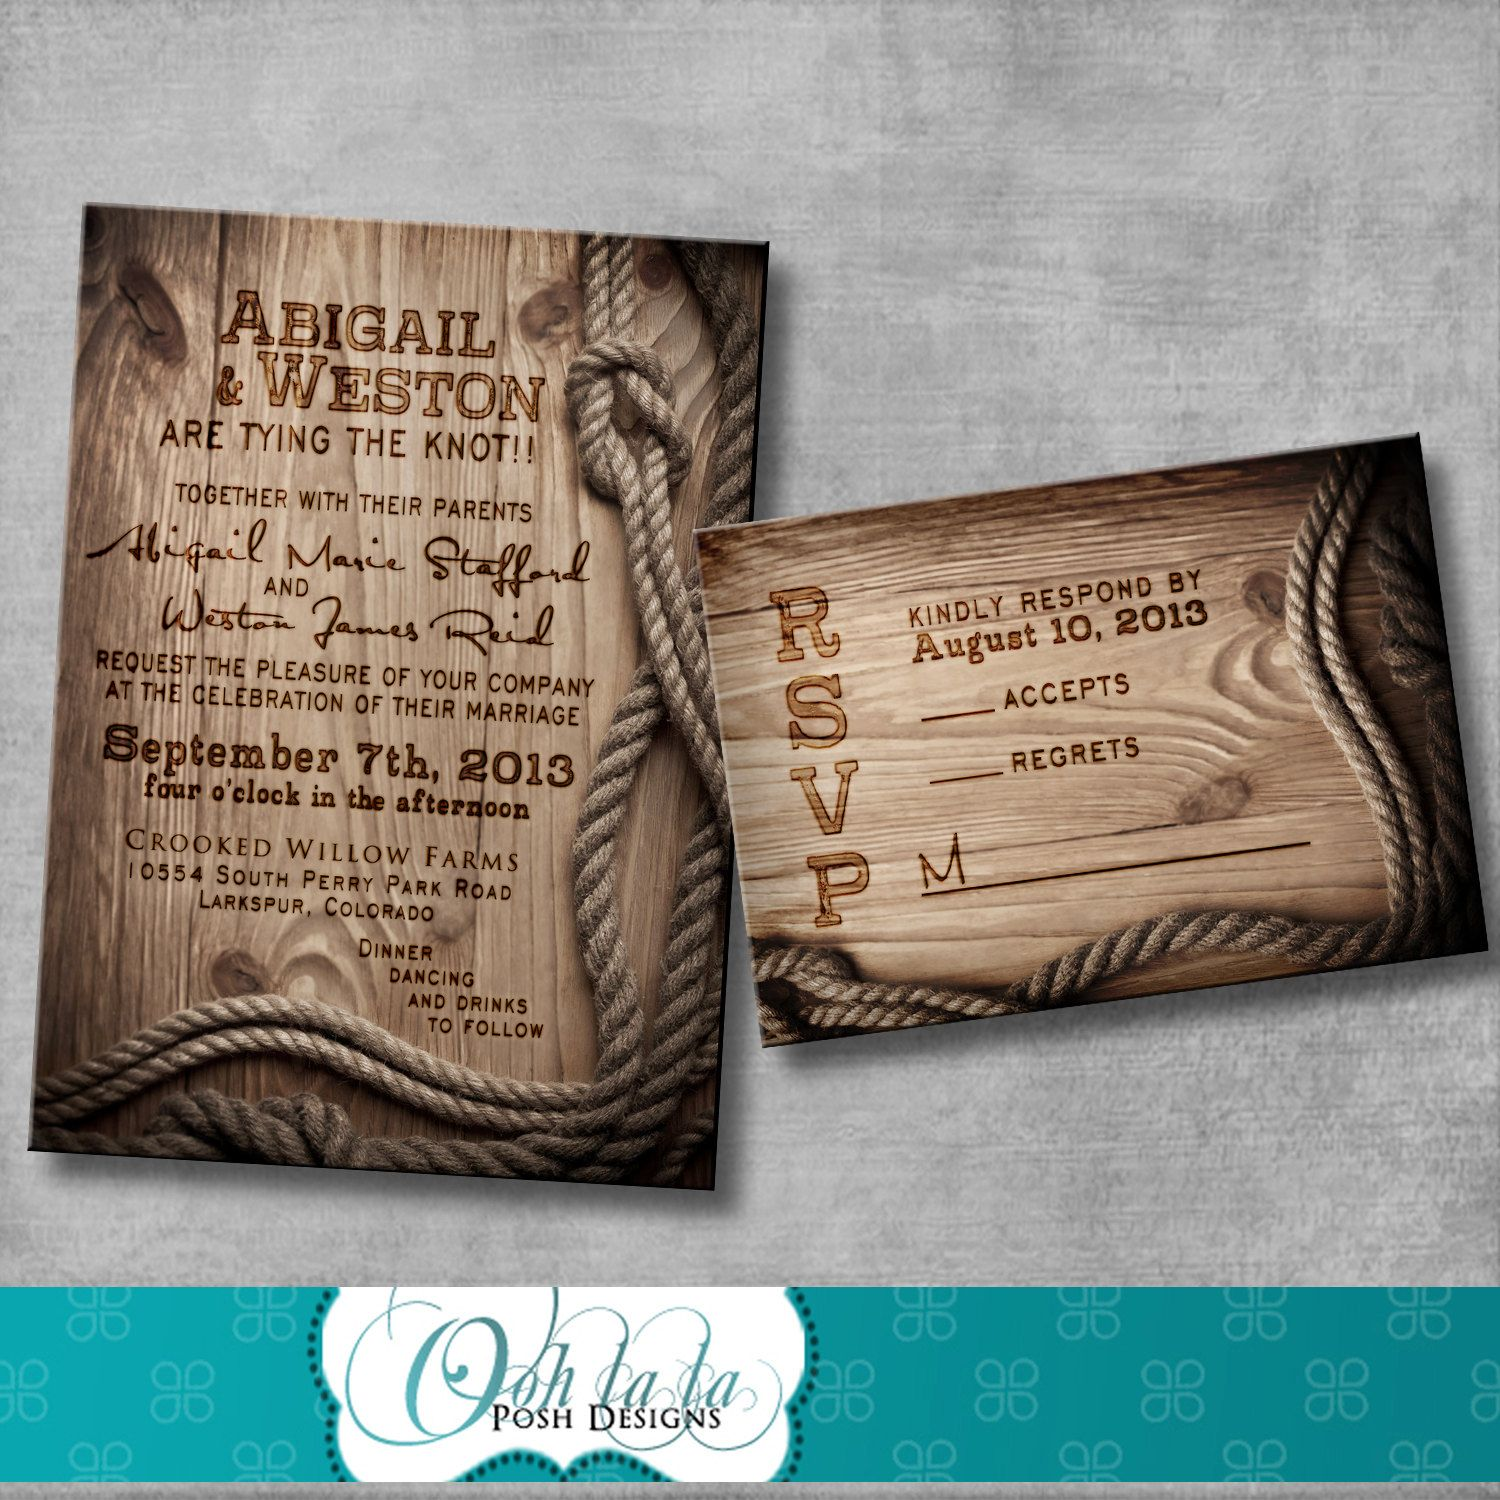 Sending Wedding Invitations Post Office: Rustic Wedding Invitation With Matching Response Card